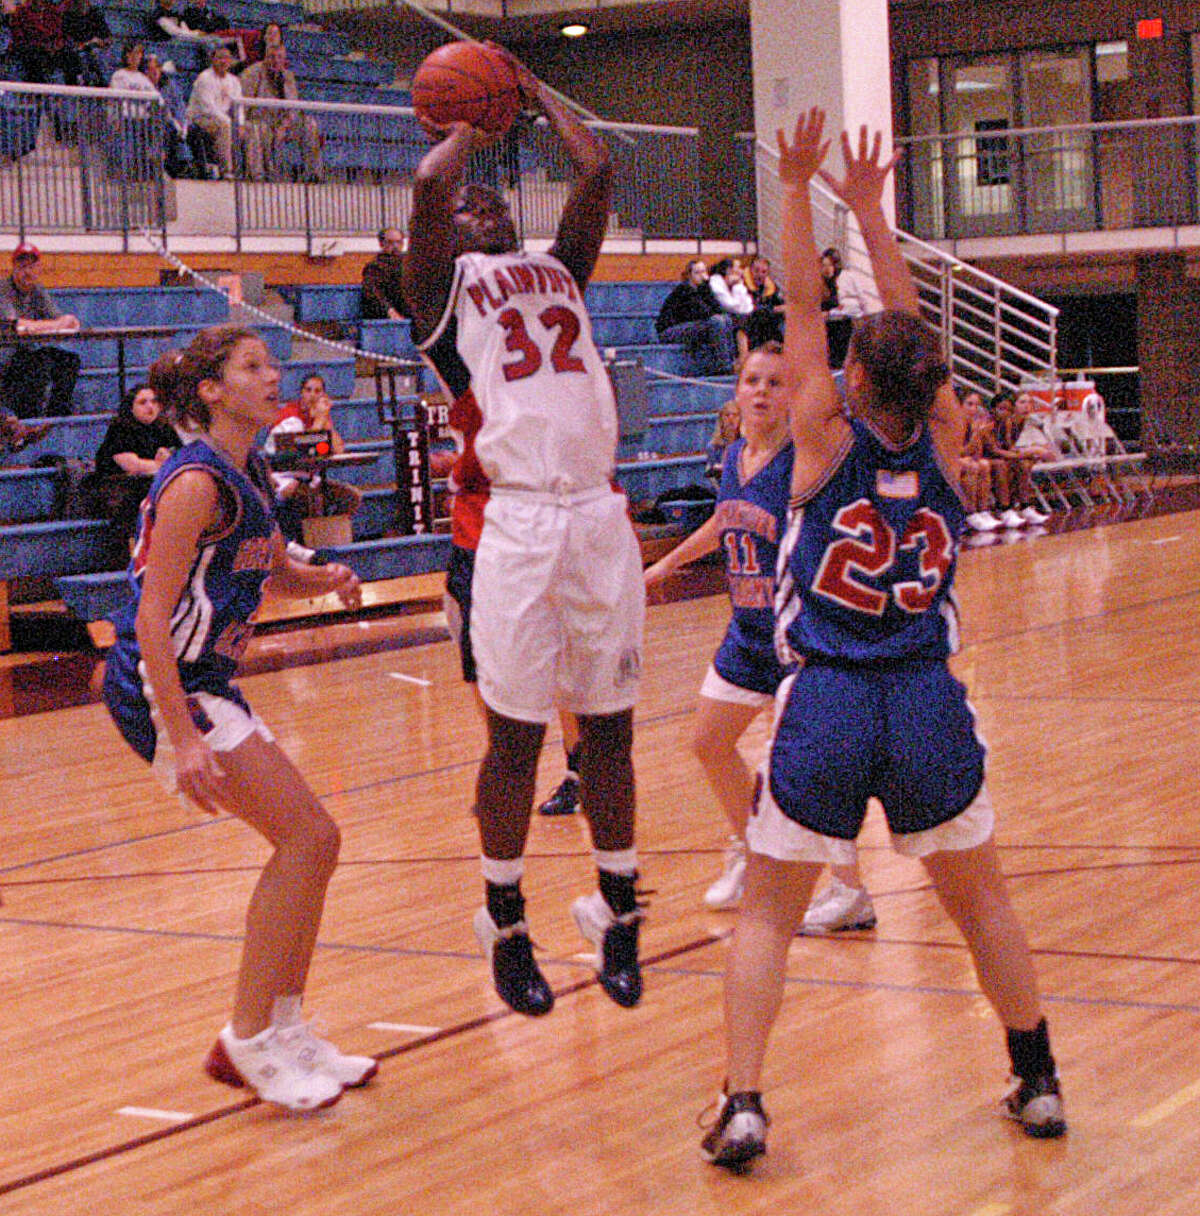 With Alesha Robertson sidelined, Tojjinay Thompson stepped into the spotlight and excelled for Plainview.